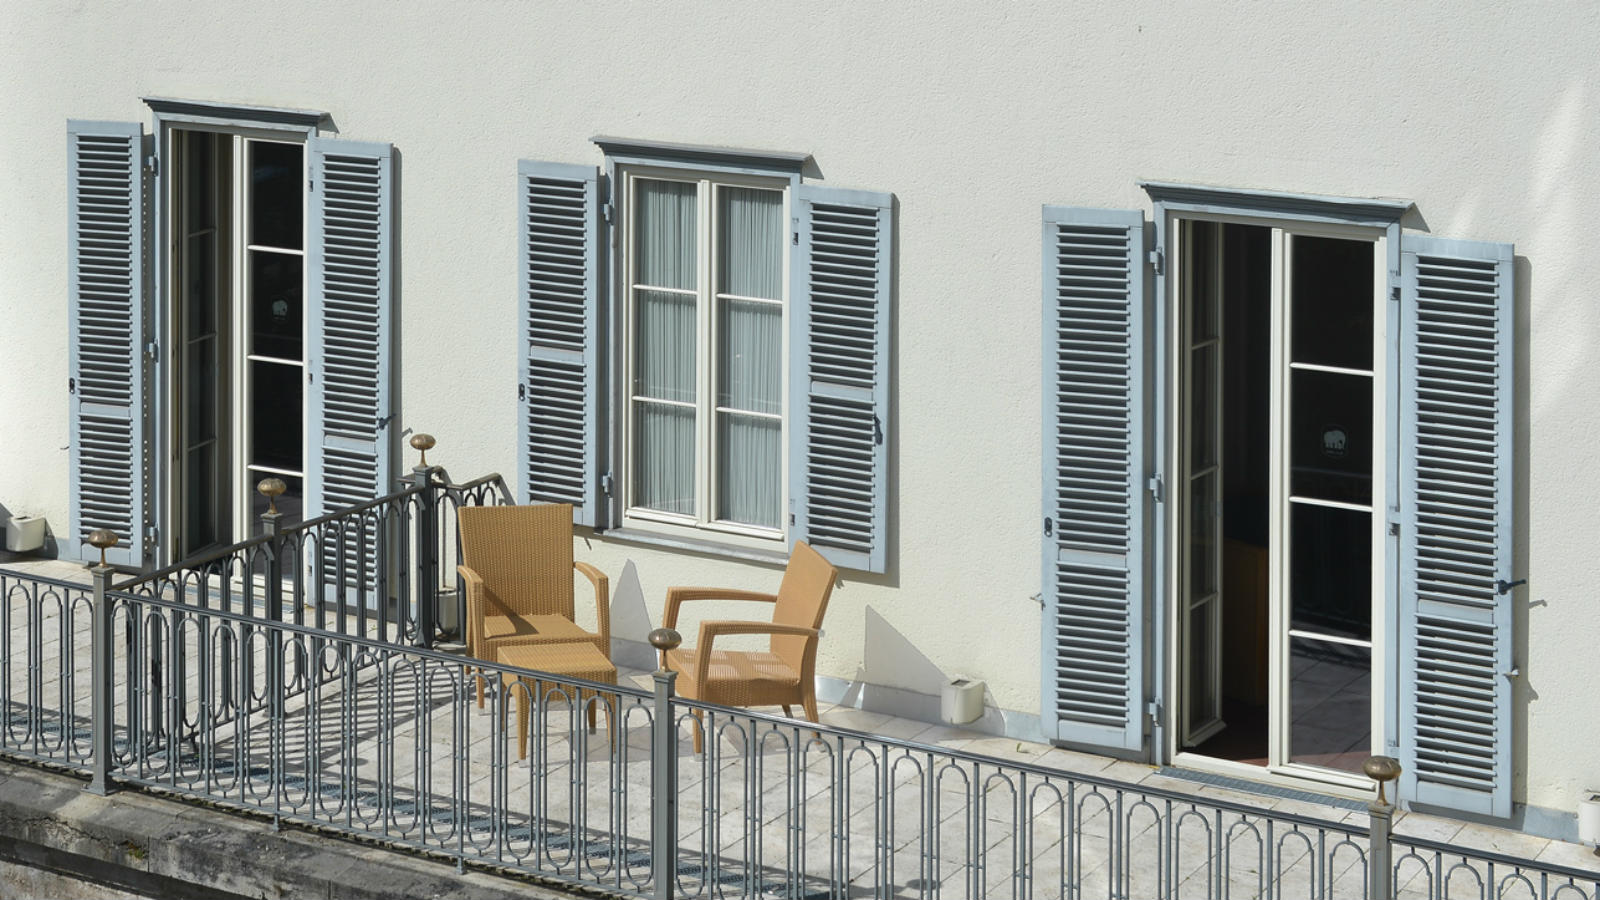 Balcony rooms at the Hotel Elephant Weimar